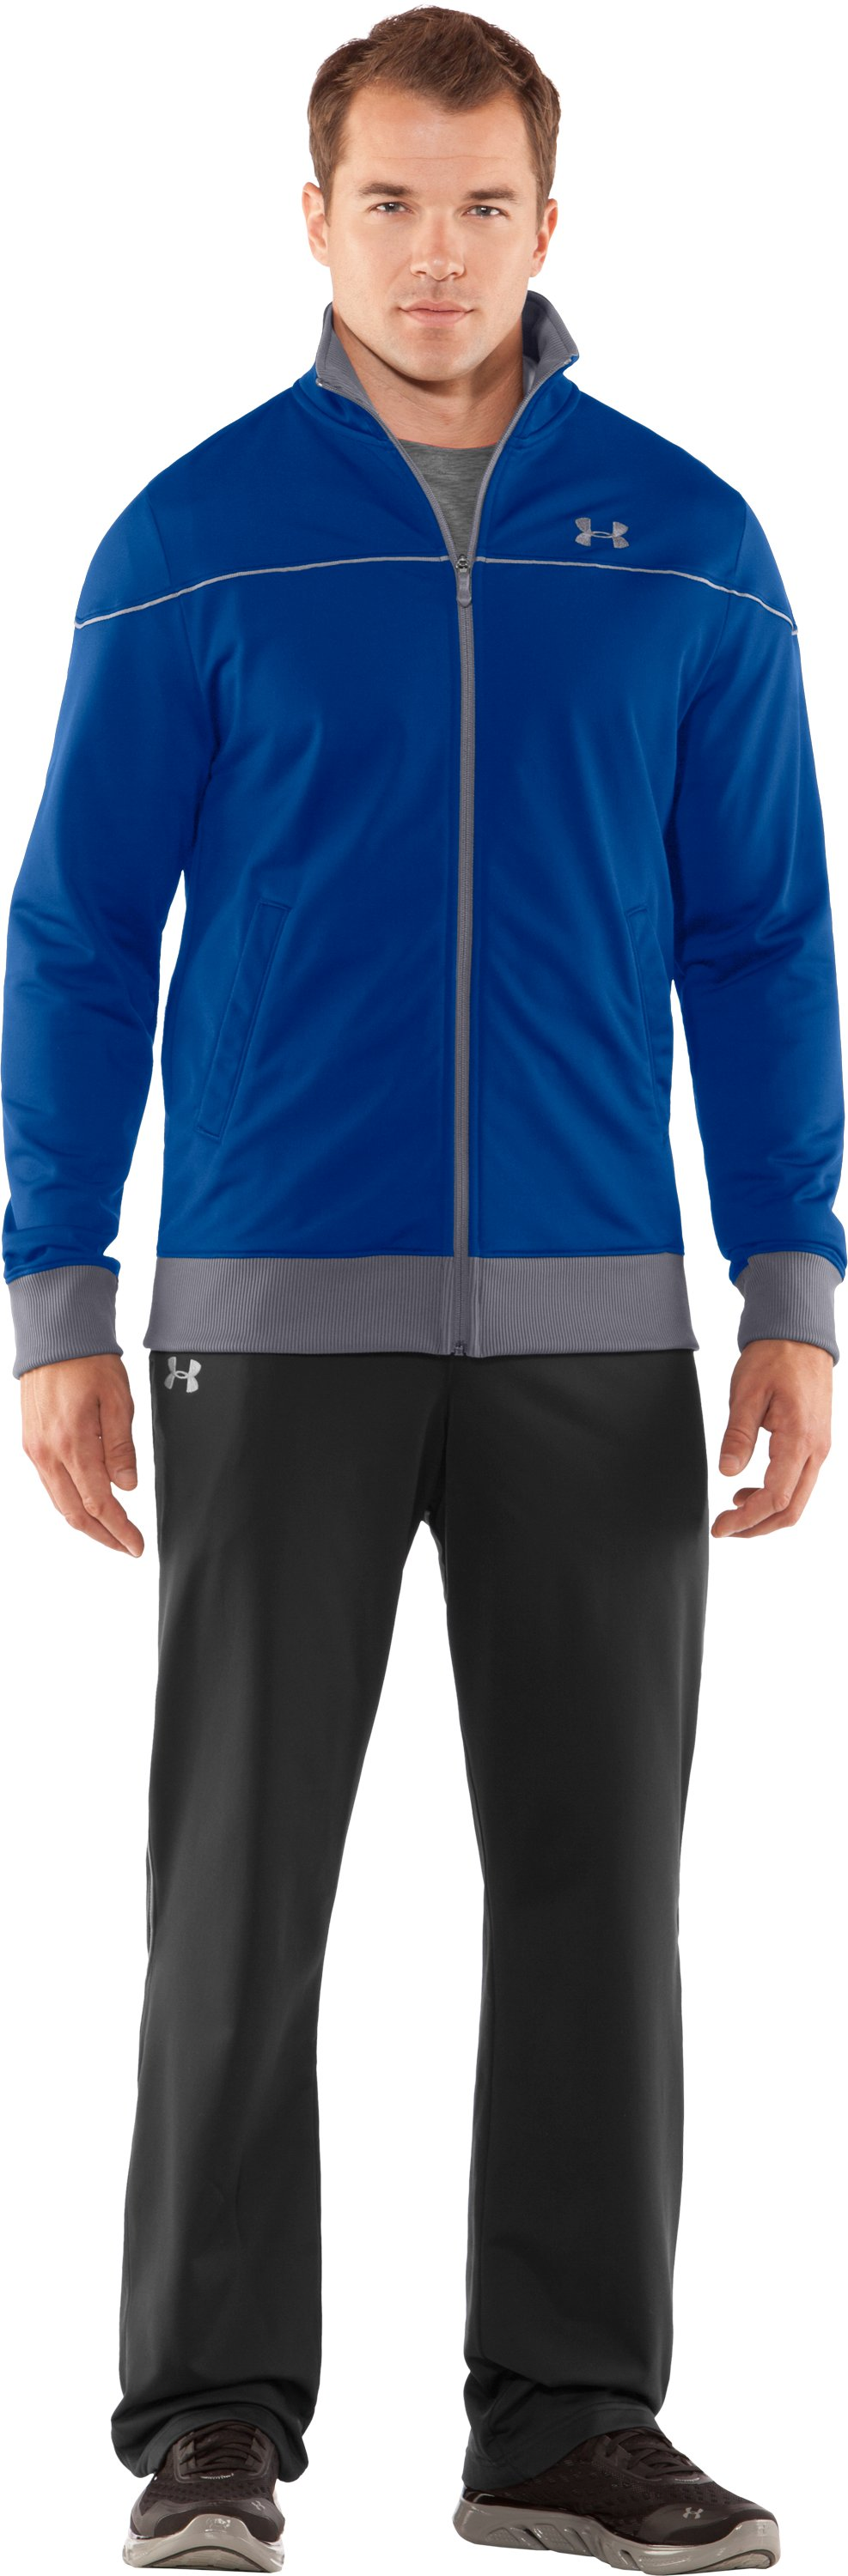 Men's UA Strength Track Jacket, Squadron, zoomed image